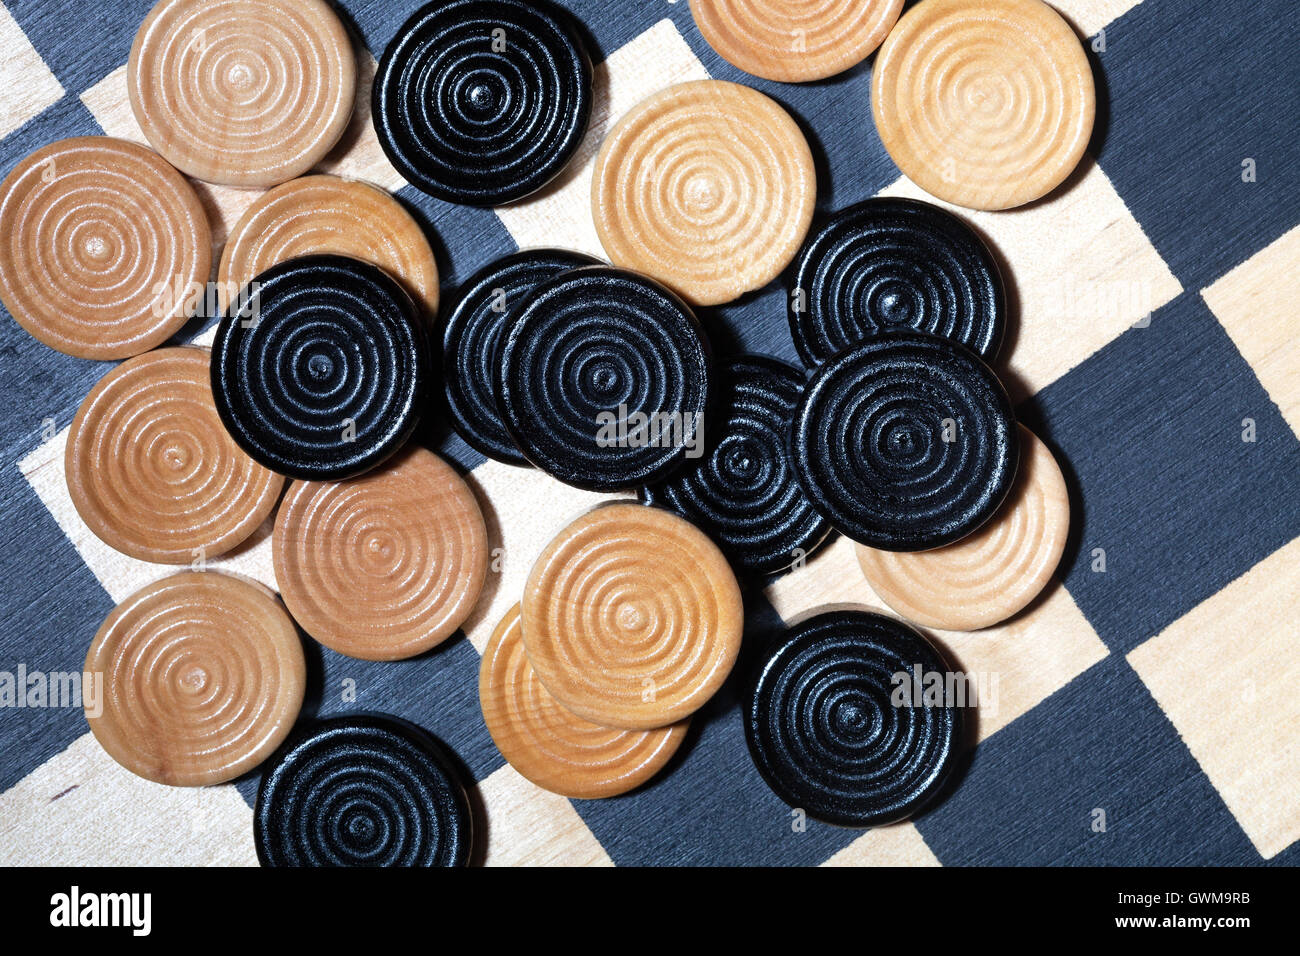 Checkers or draughts on a checker board Stock Photo